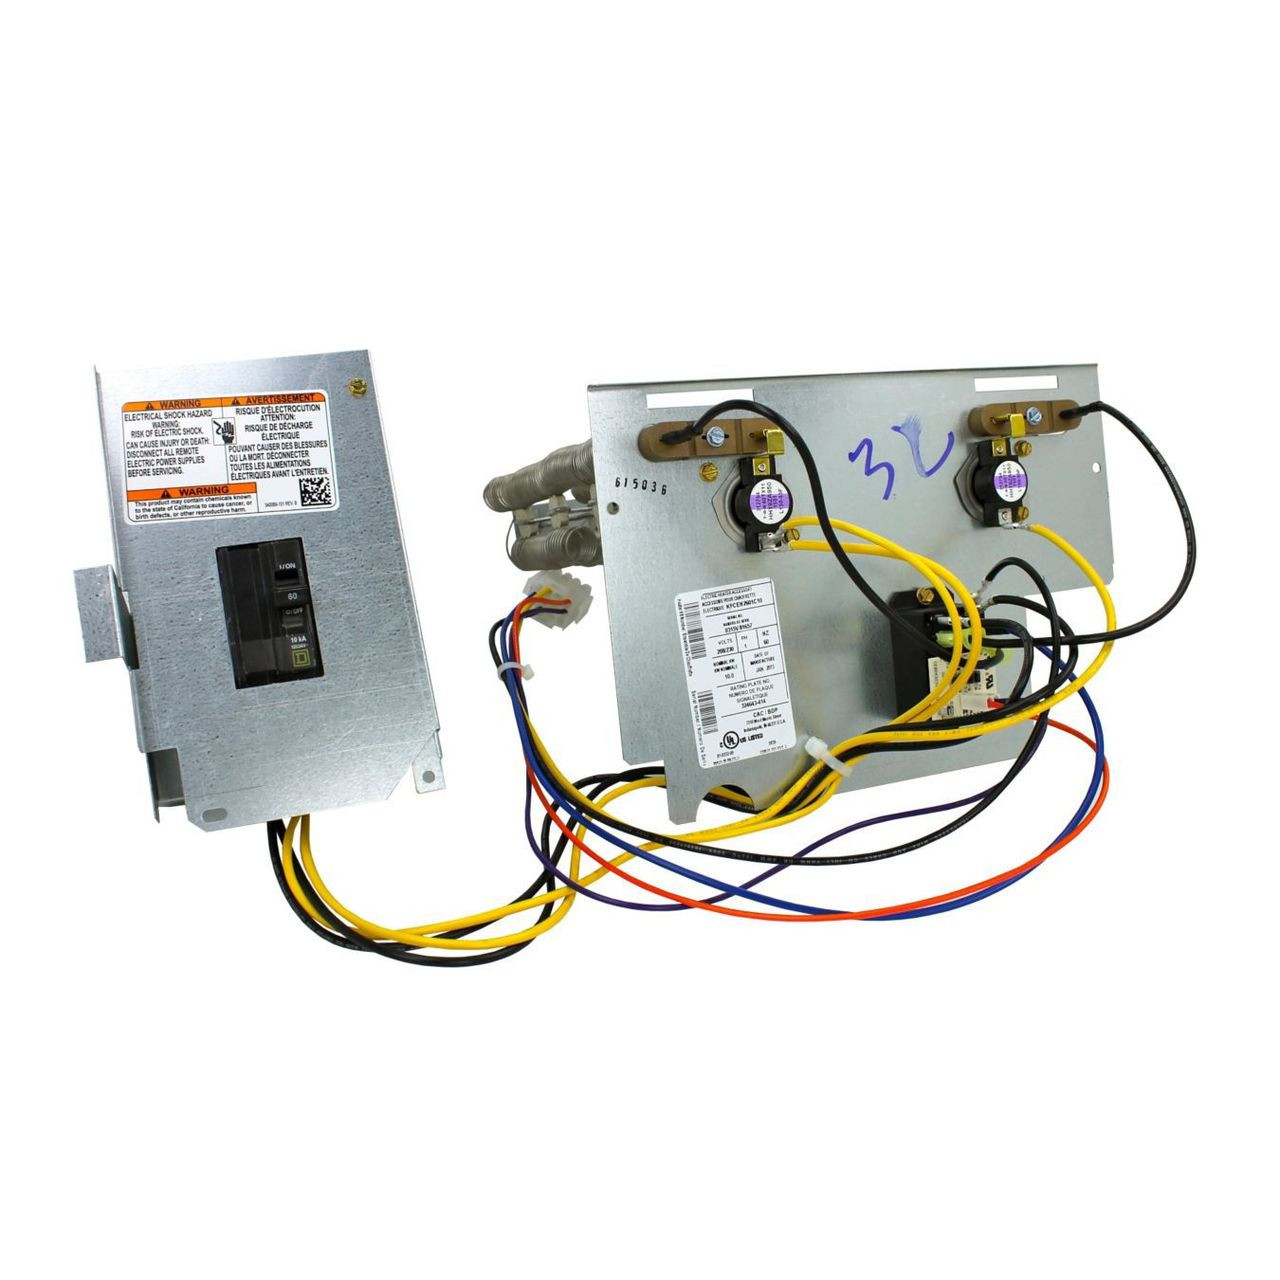 Trane Kfceh2501c08 Heating Kit 8 Kw   240v W  Internal